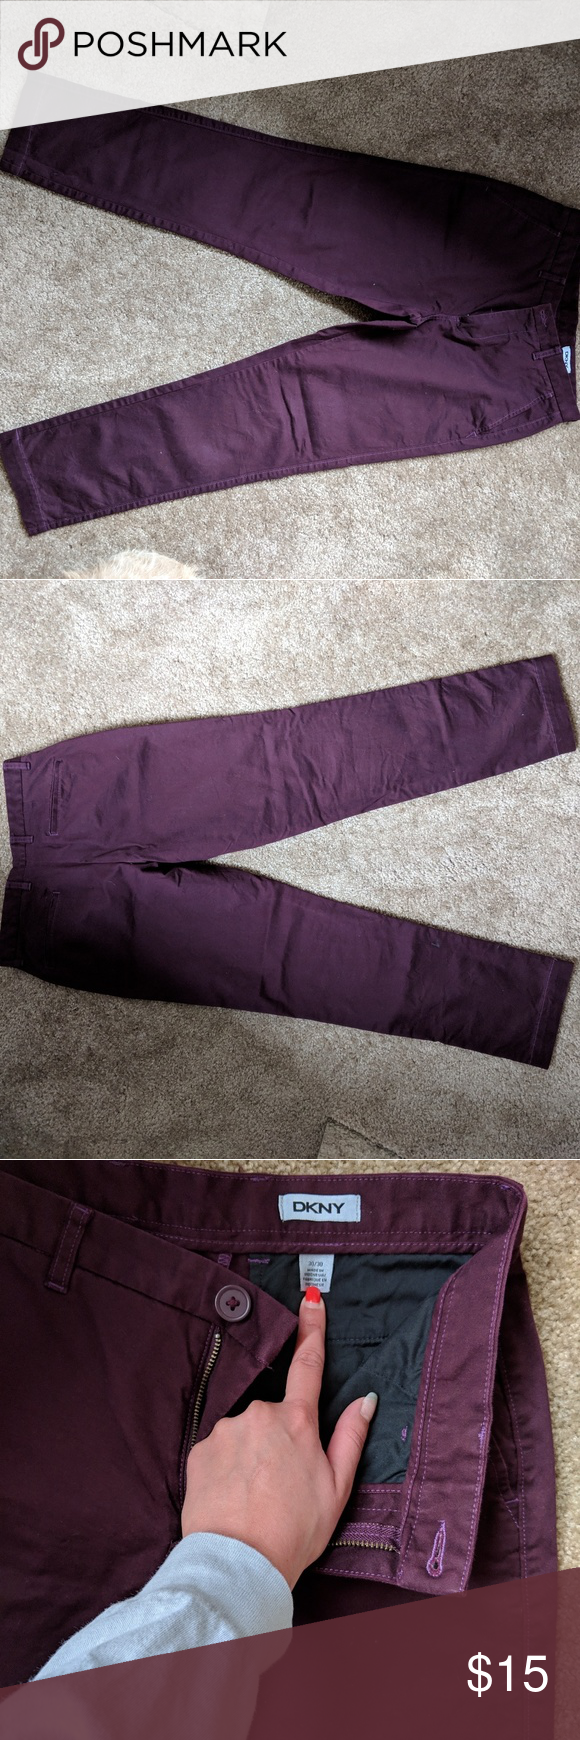 Men's Burgandy Dress pant Great condition. No flaws. Size 30x30. Slim fit. Dkny ...